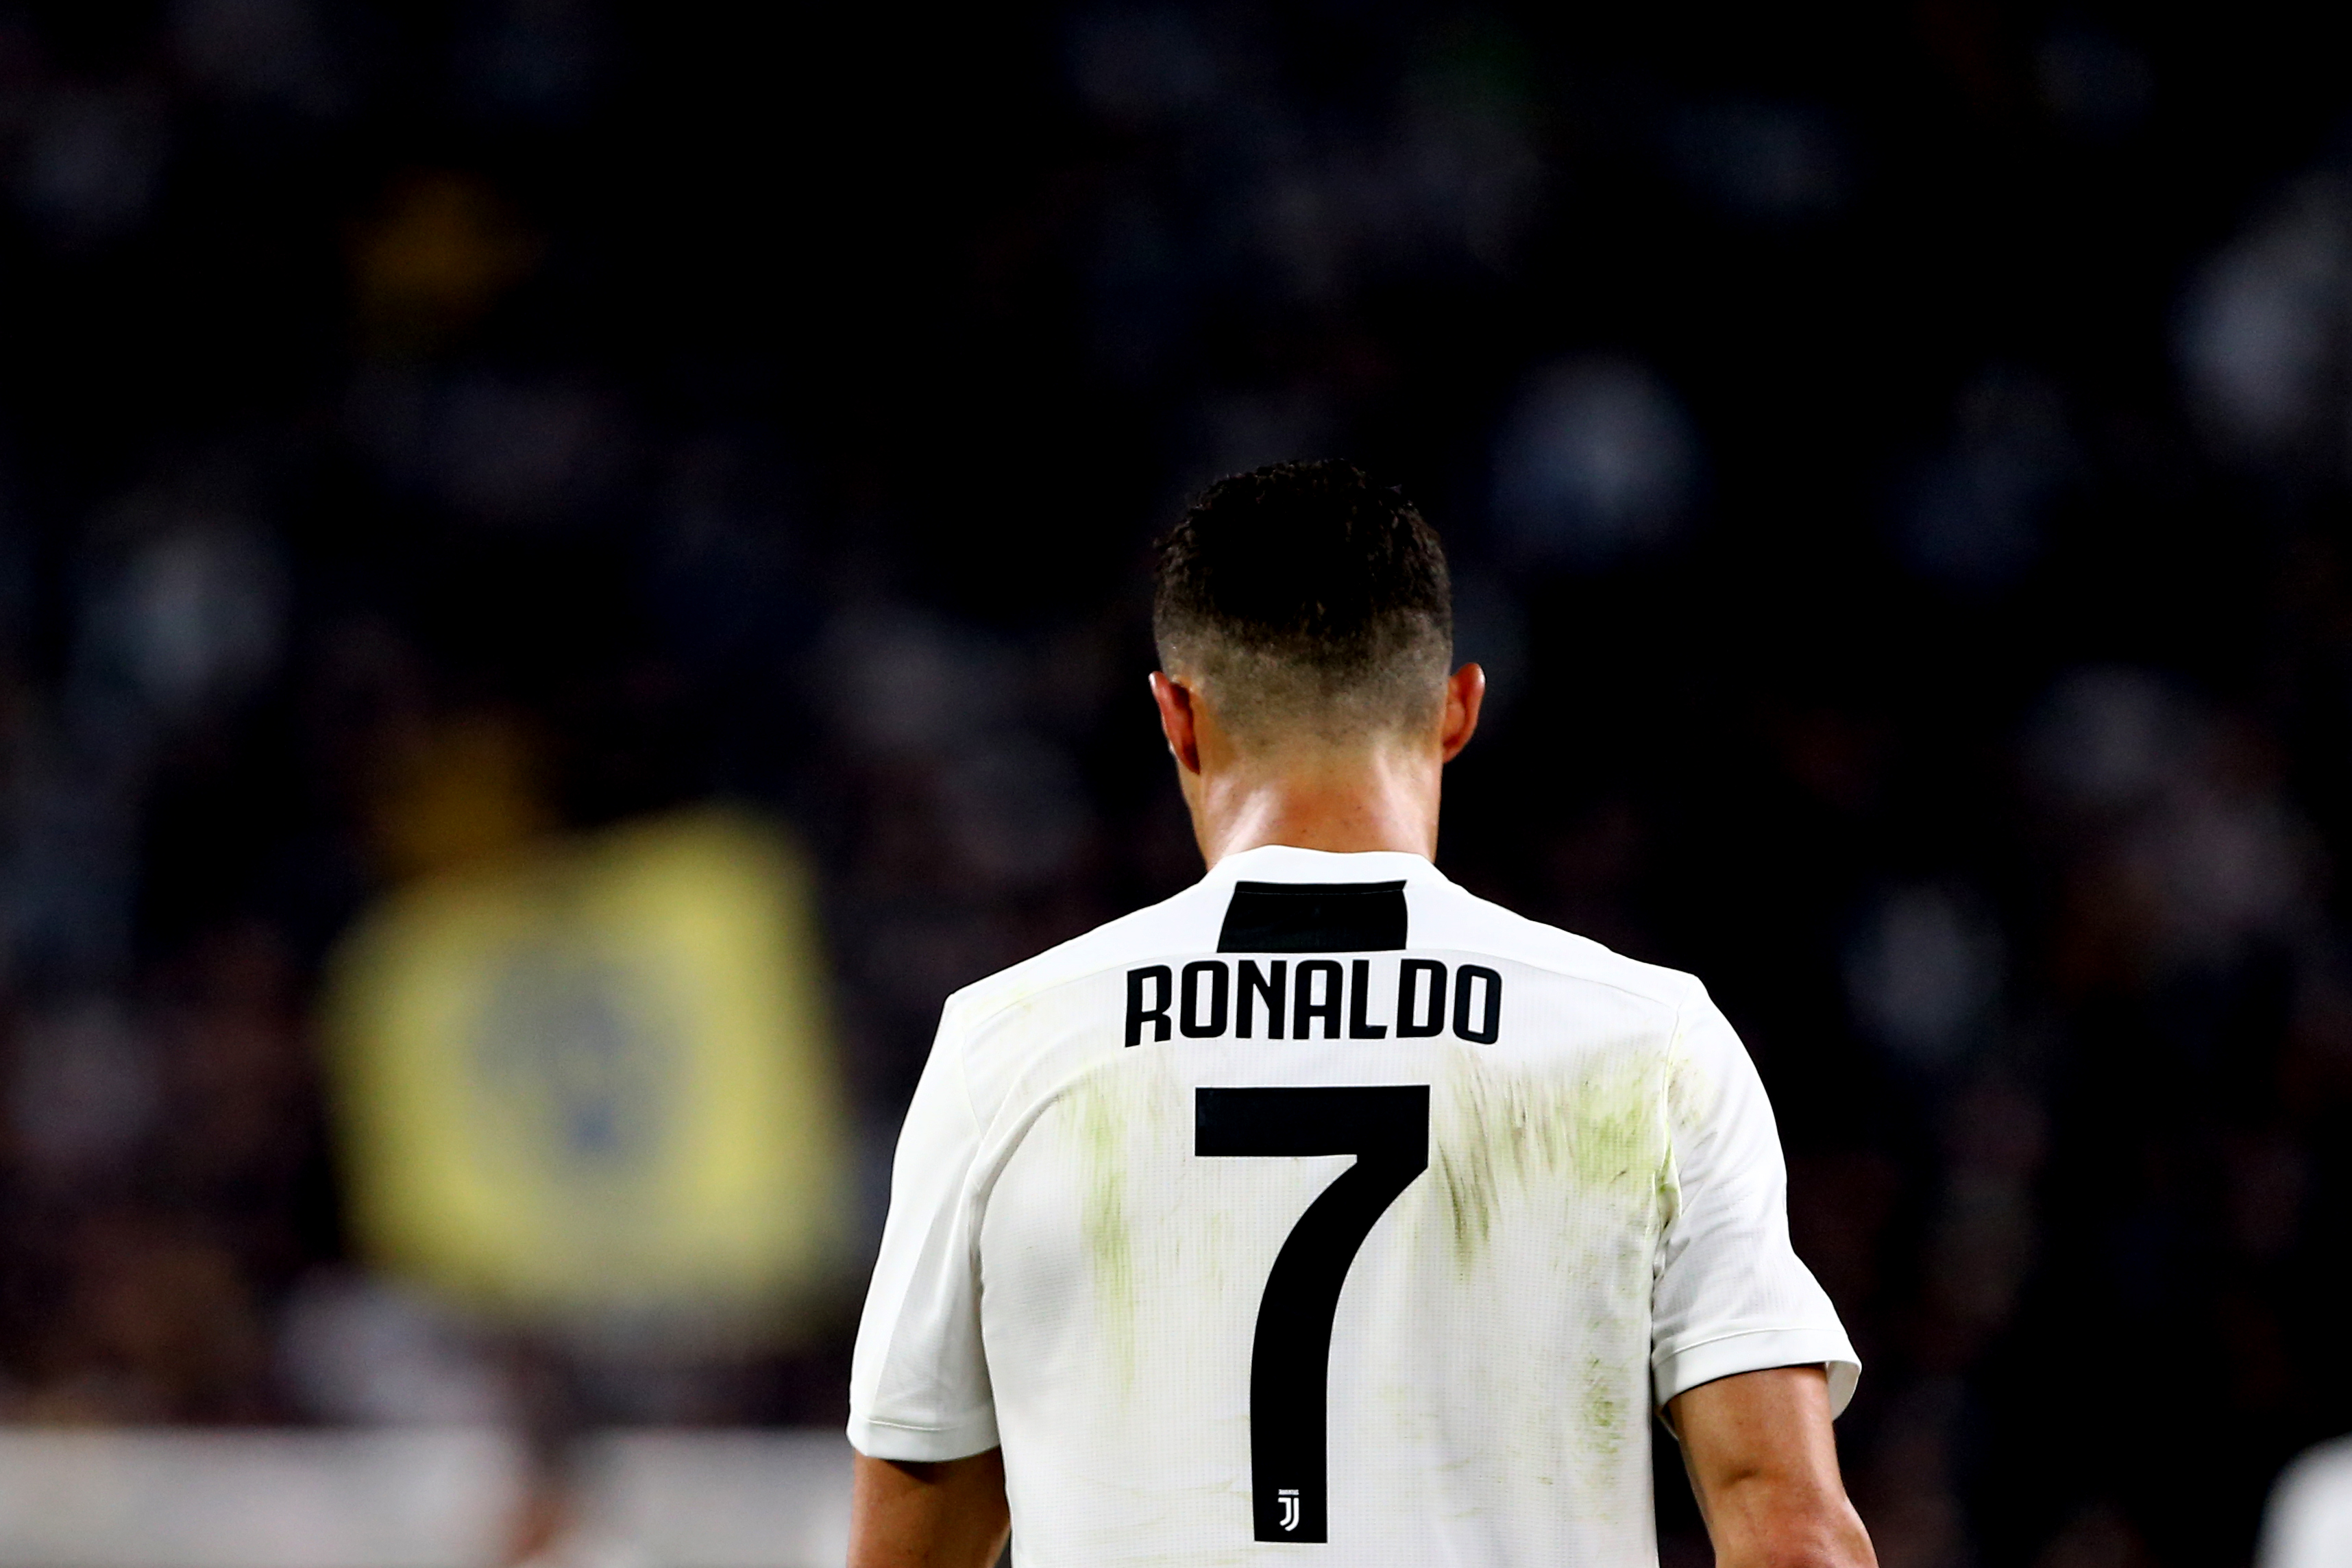 Cristiano Ronaldo of Juventus FC   during the Serie A football match between Juventus Fc and Ssc Napoli.